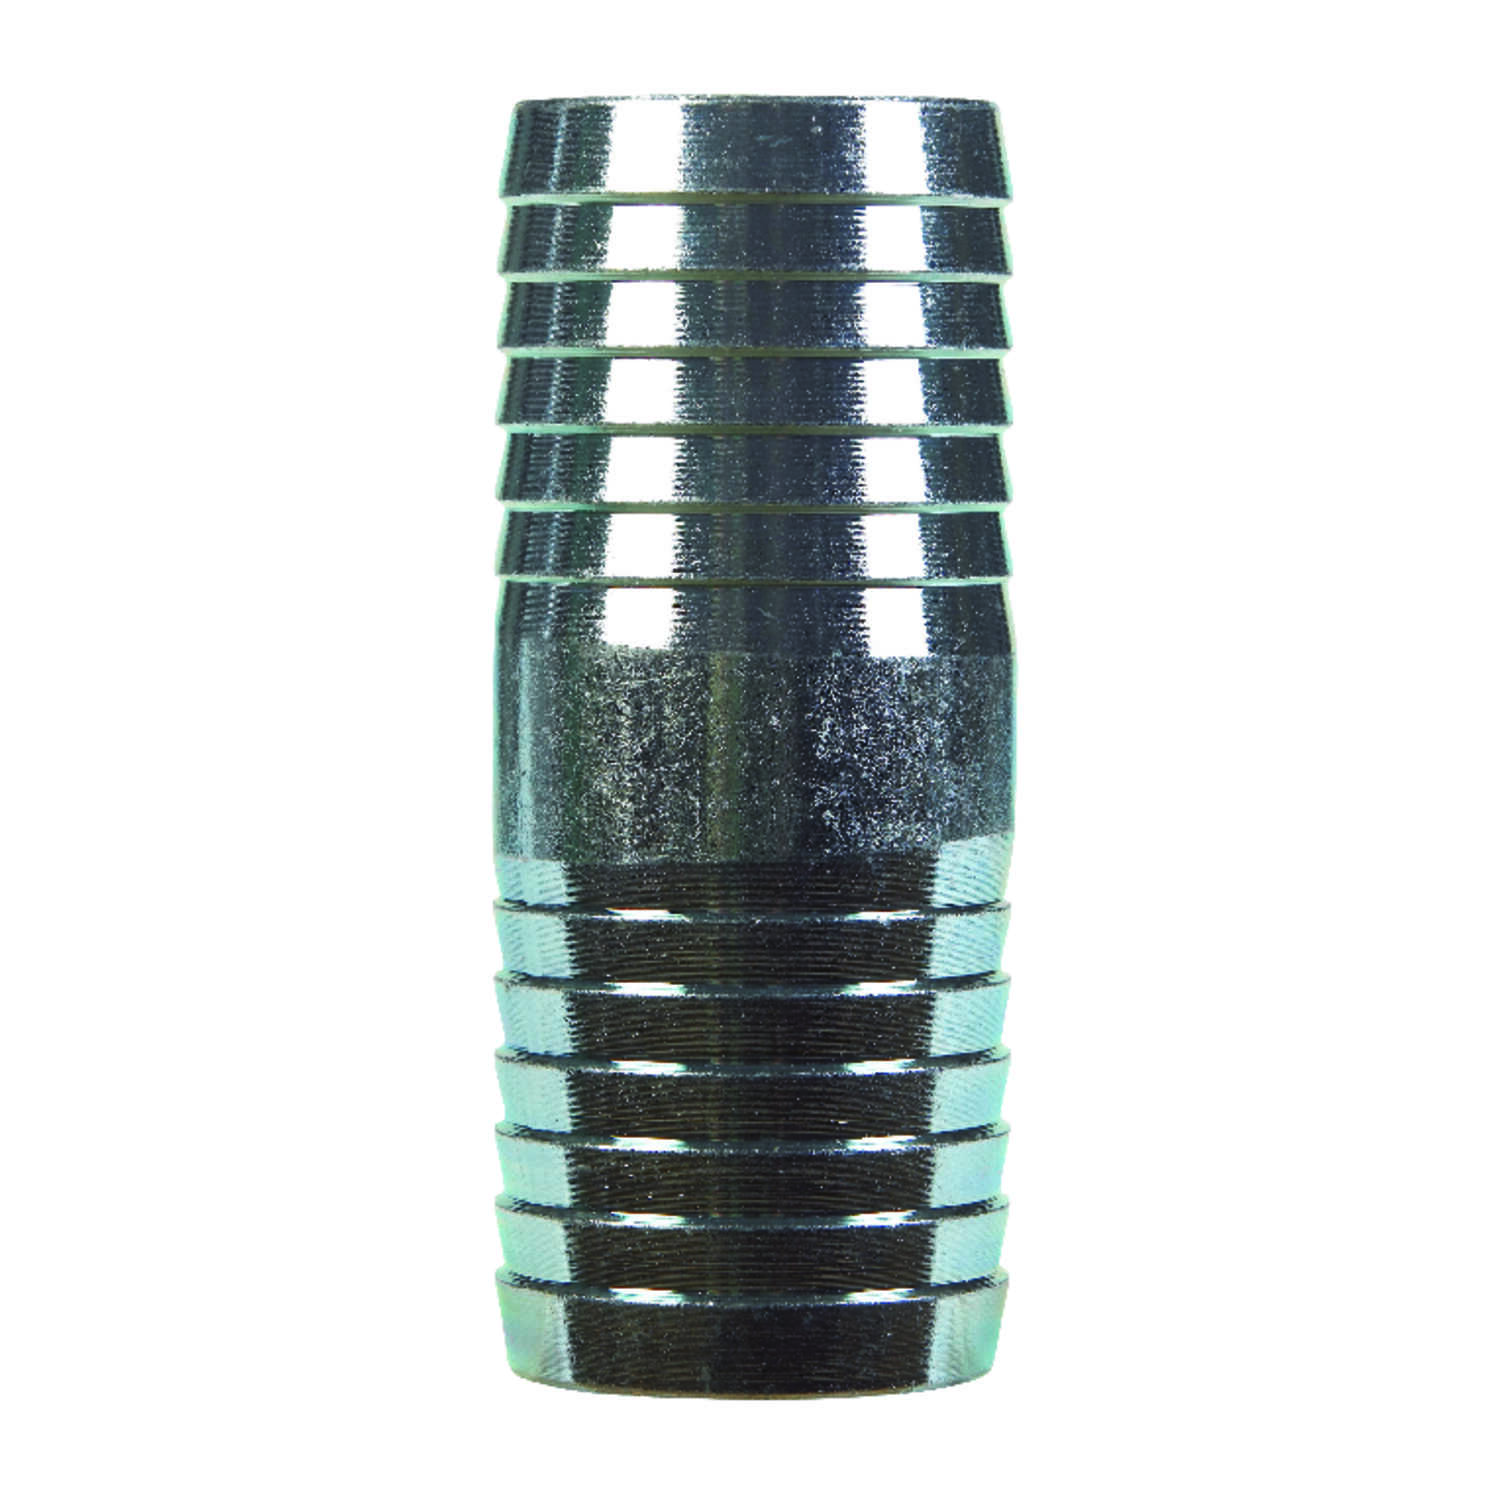 B & K  1-1/4 in. Barb   x 1-1/4 in. Dia. Barb  Galvanized  Galvanized Steel  Coupling